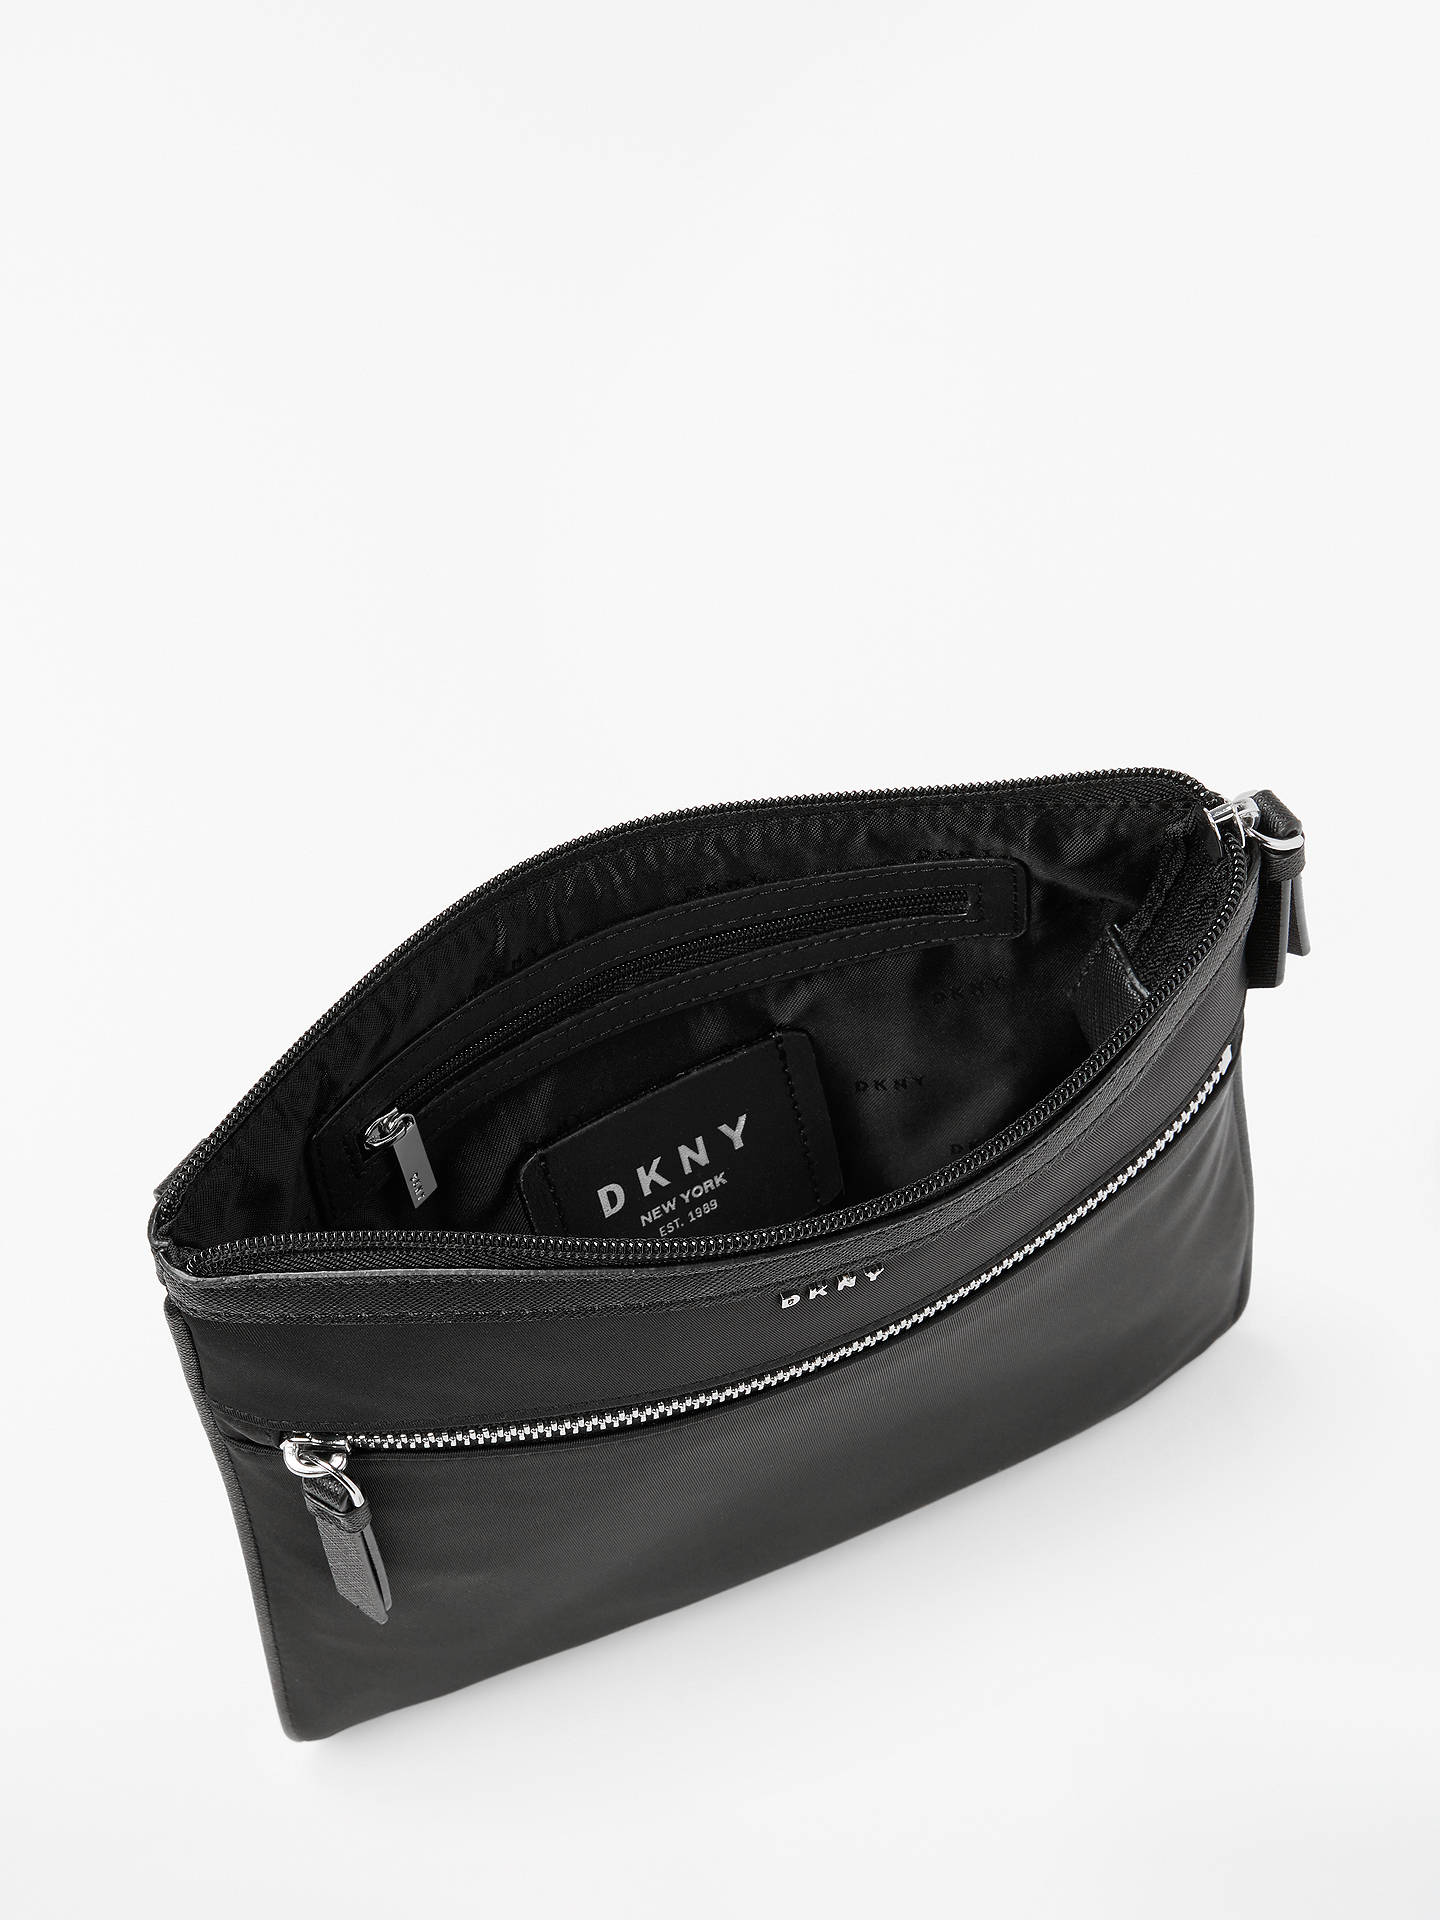 8a26db2b85 ... Buy DKNY Casey Zip Top Cross Body Bag